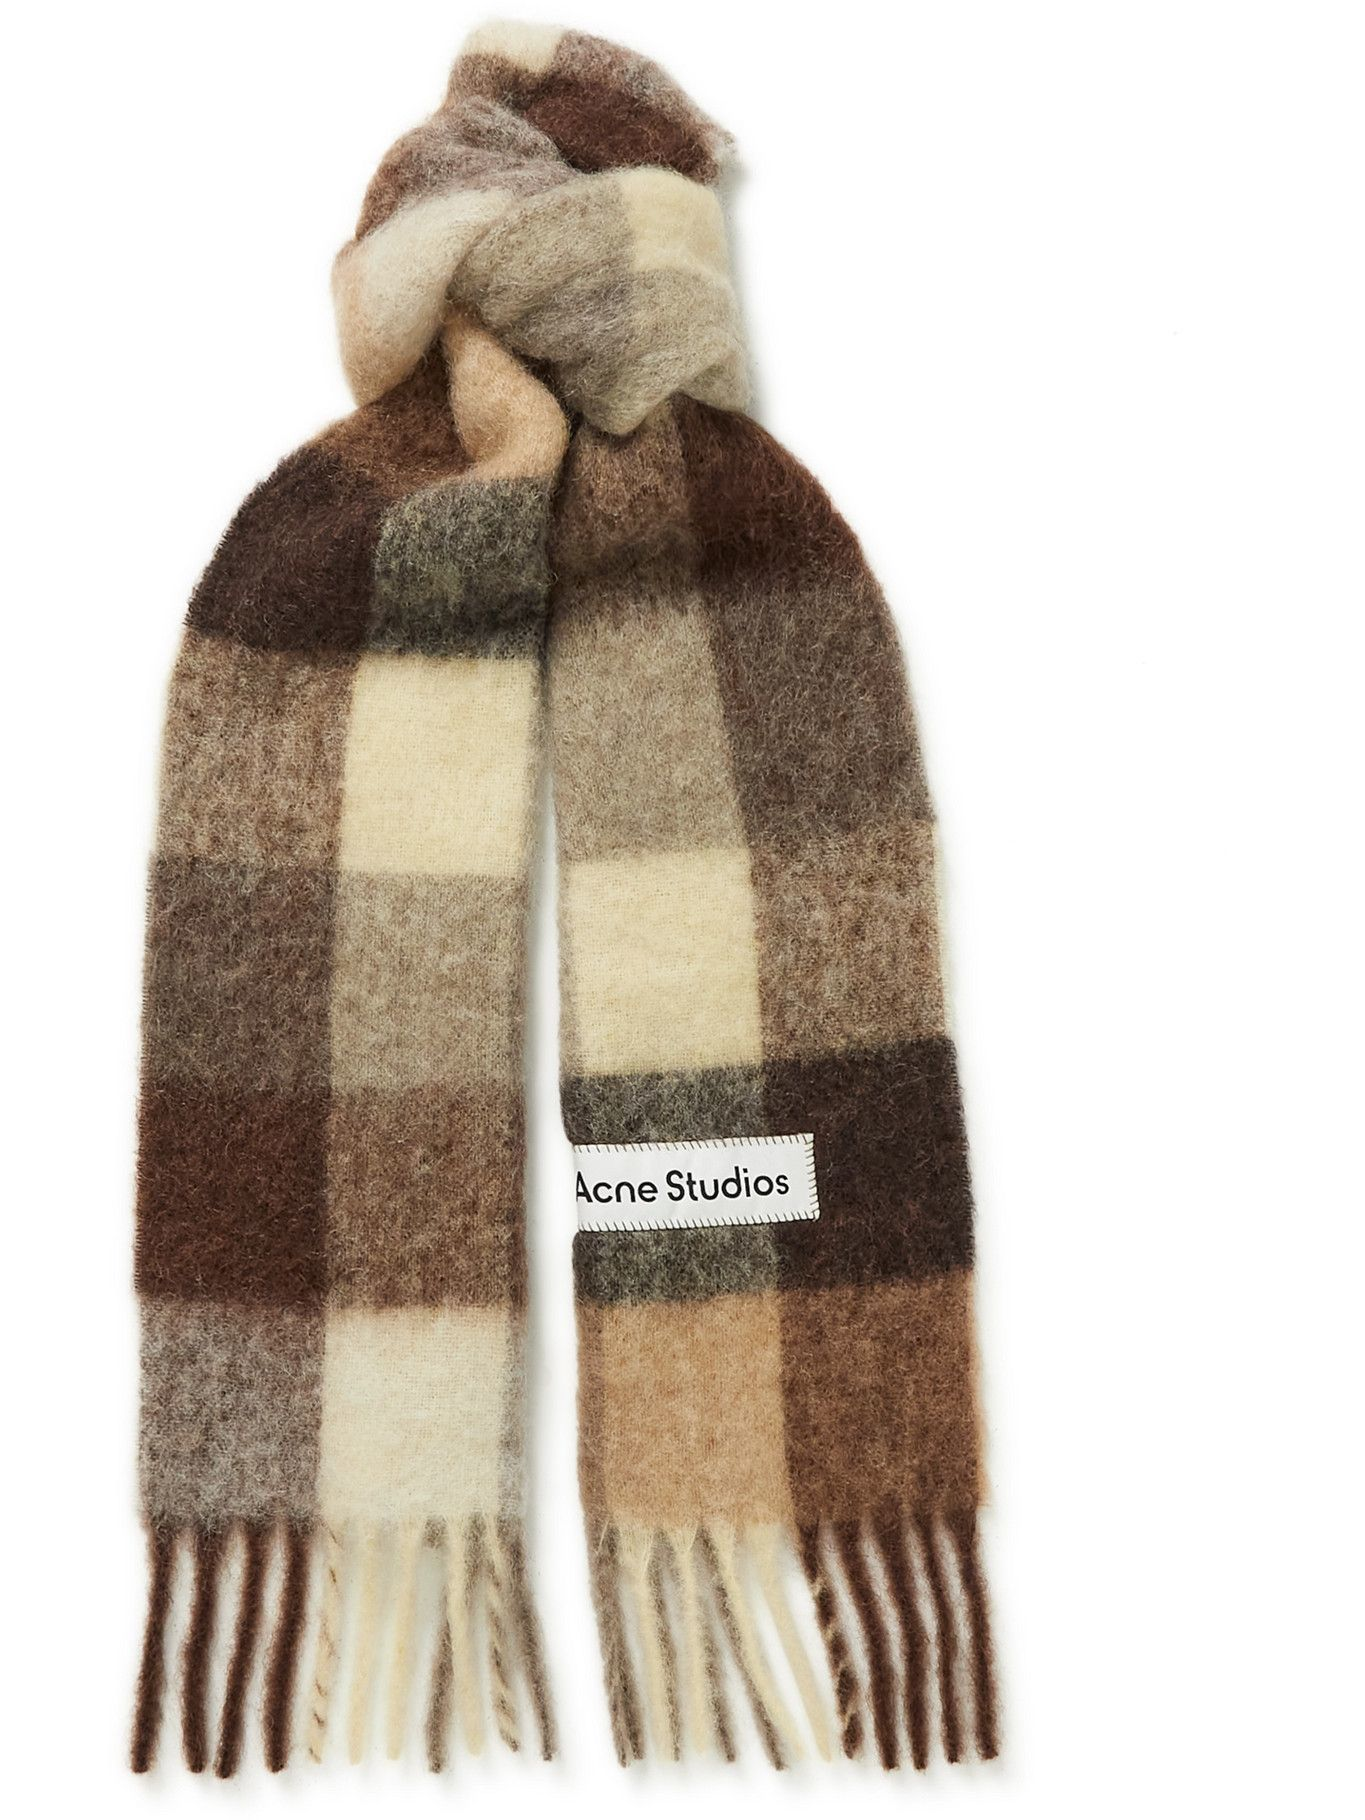 Photo: Acne Studios - Checked Knitted Scarf